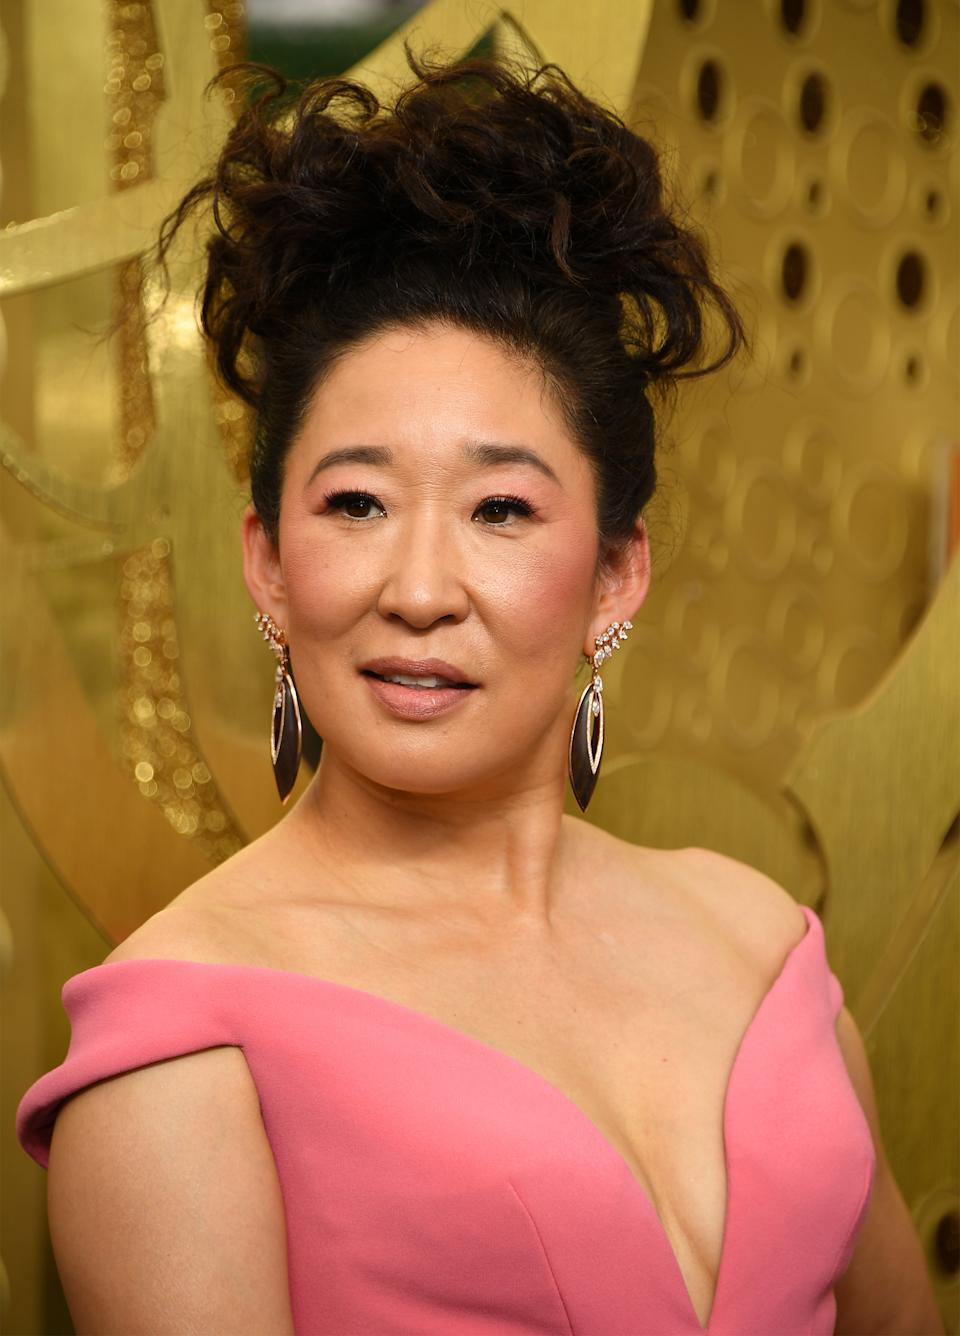 LOS ANGELES, CALIFORNIA - SEPTEMBER 22:   Sandra Oh attends the 71st Emmy Awards at Microsoft Theater on September 22, 2019 in Los Angeles, California.  (Photo by Kevin Mazur/Getty Images)